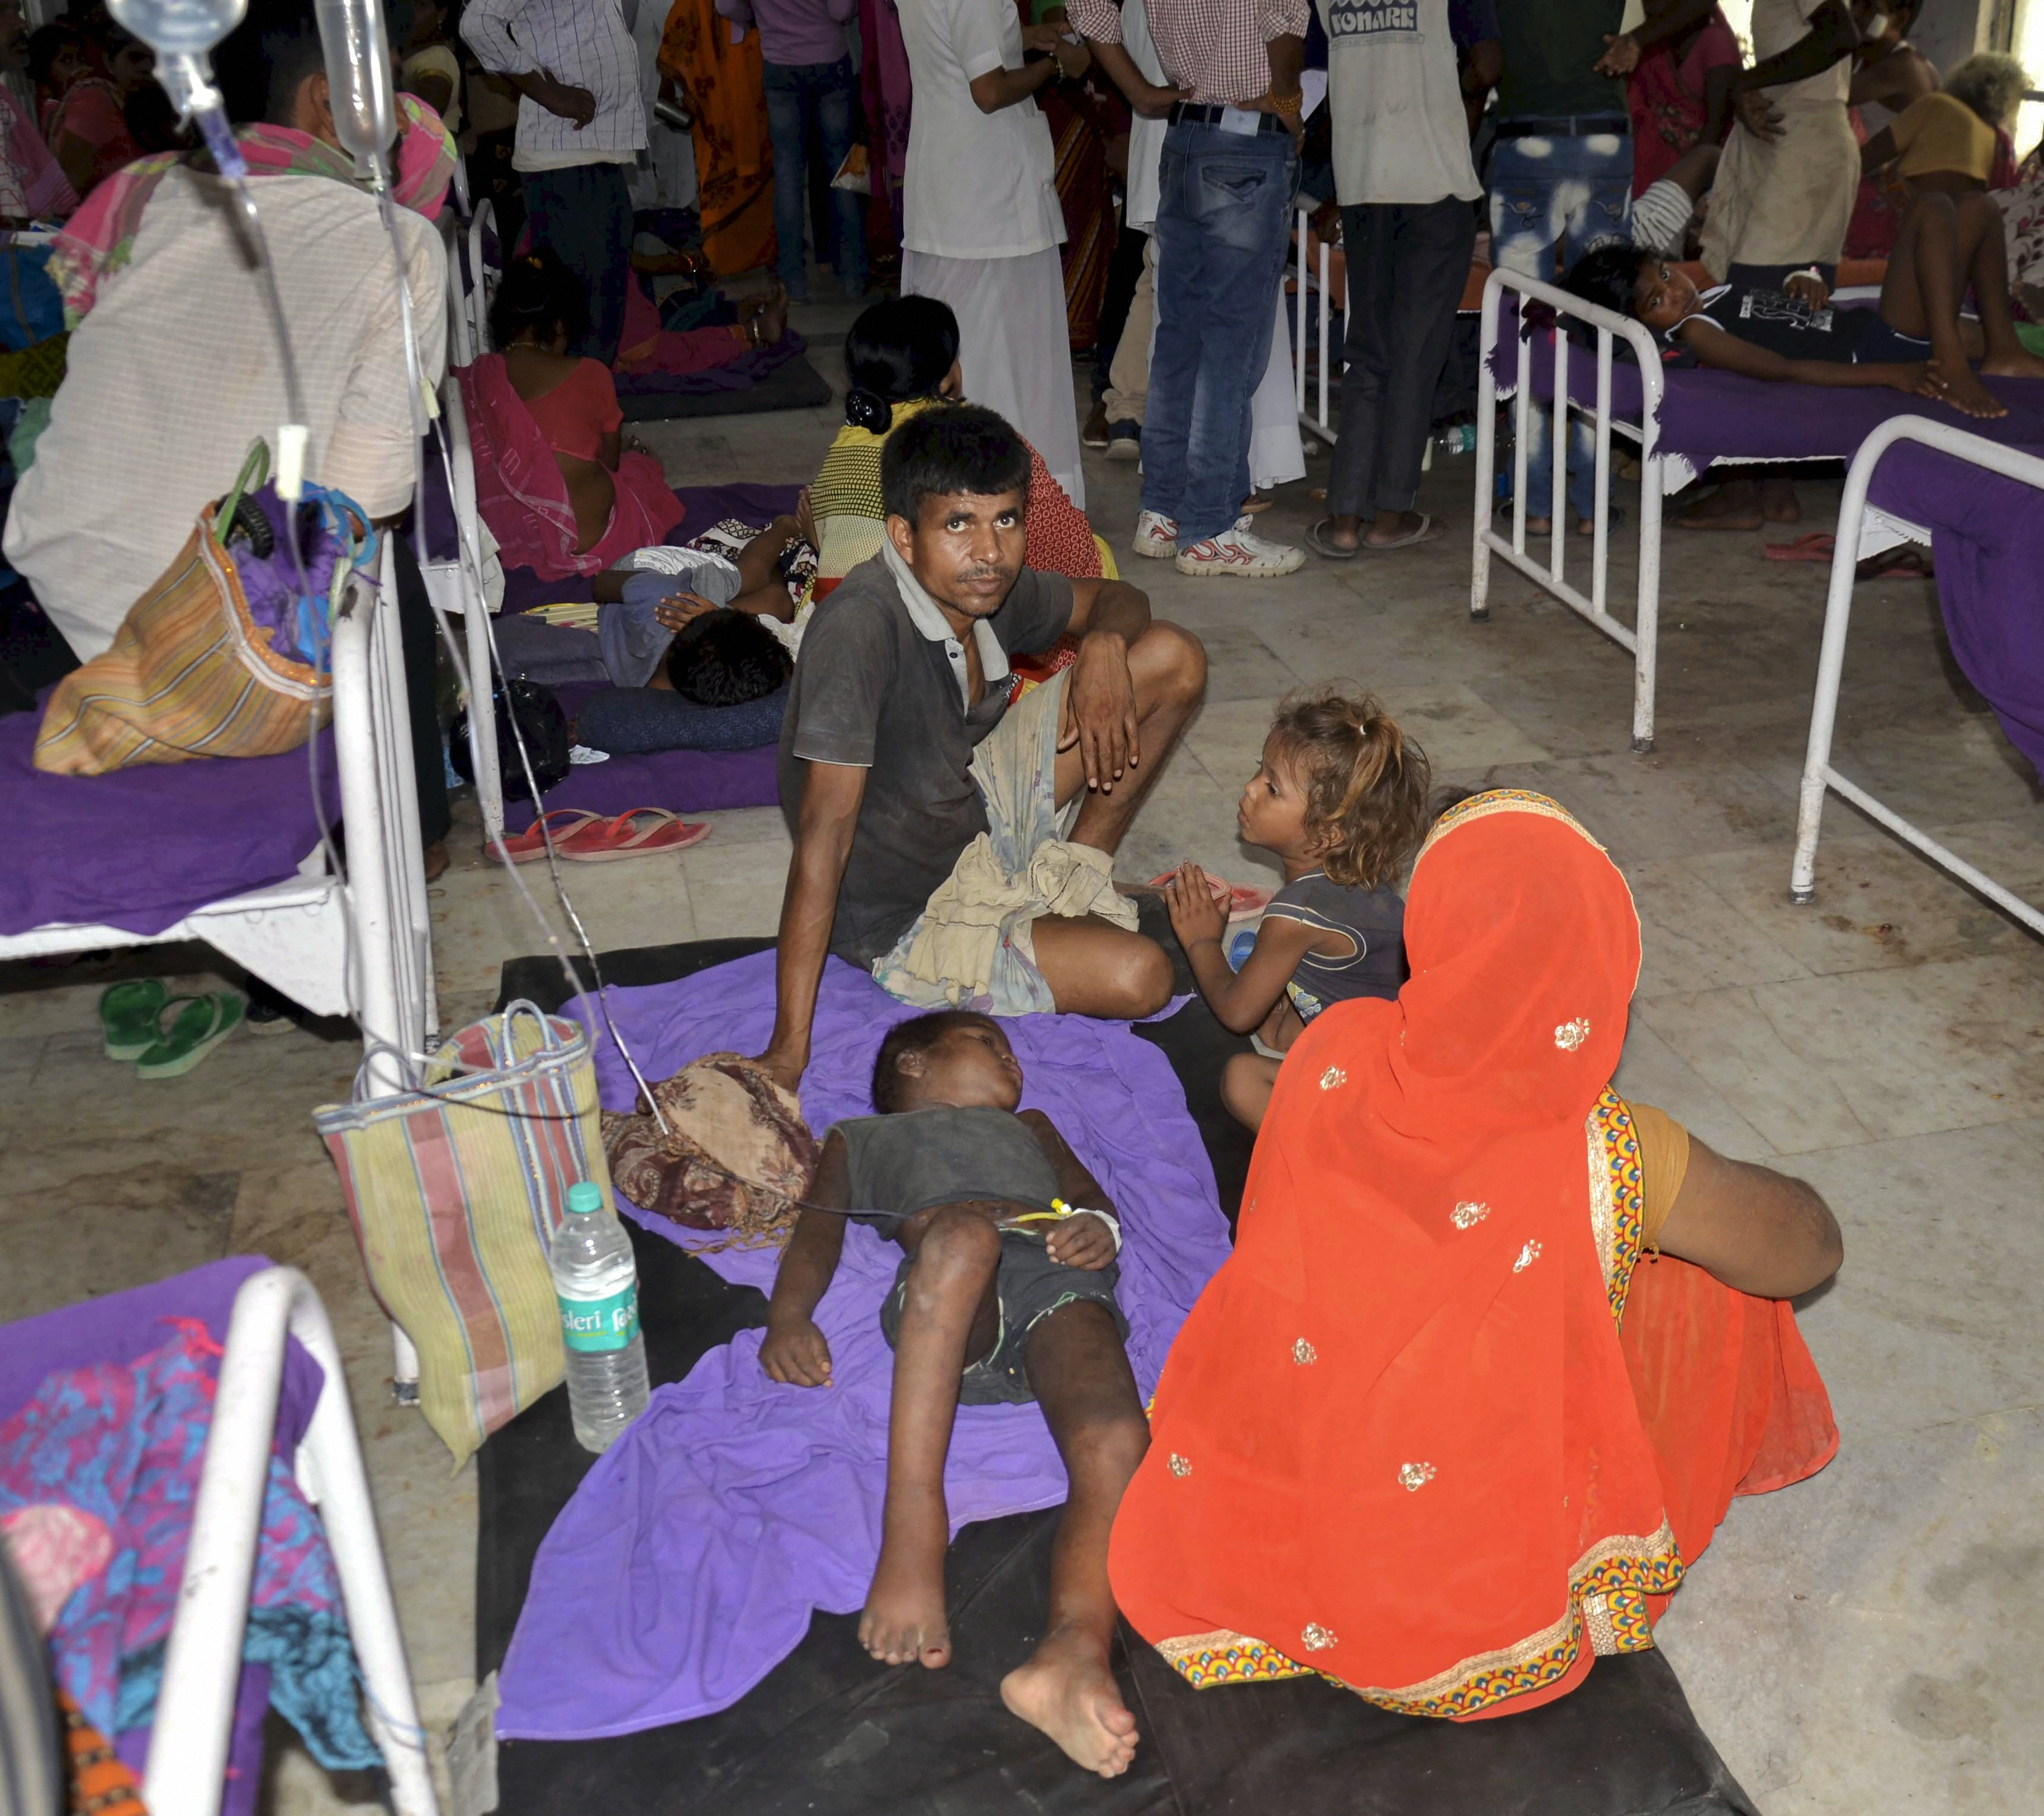 An overcrowded ward with children showing symptoms of Acute Encephalitis Syndrome at a hospital in Muzaffarpur on June 17.